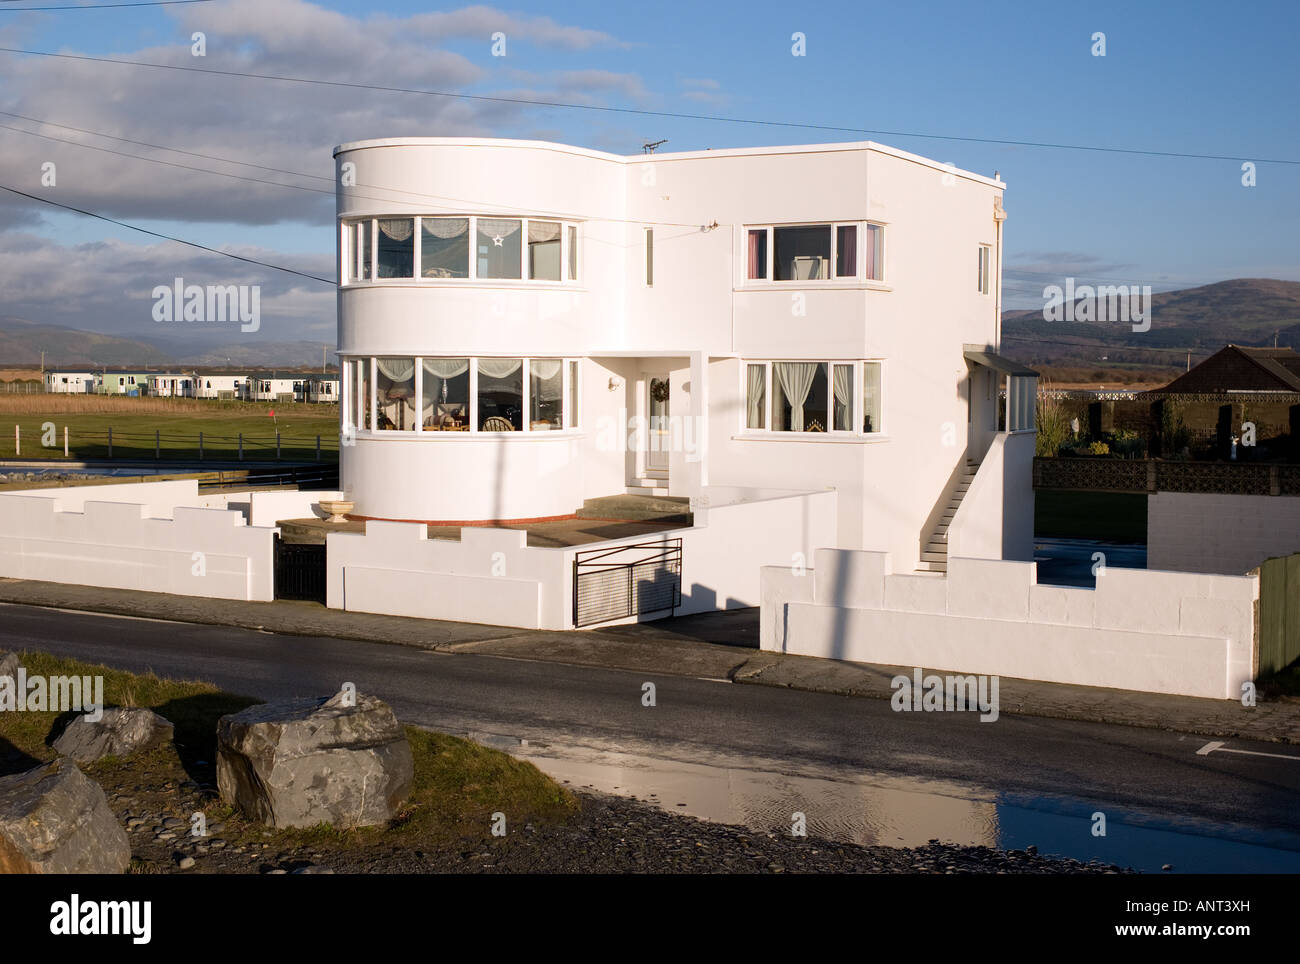 1930u0027s Seaside Modern Architecture Style White House Building In Borth, On  The West Coast Of Wales UK